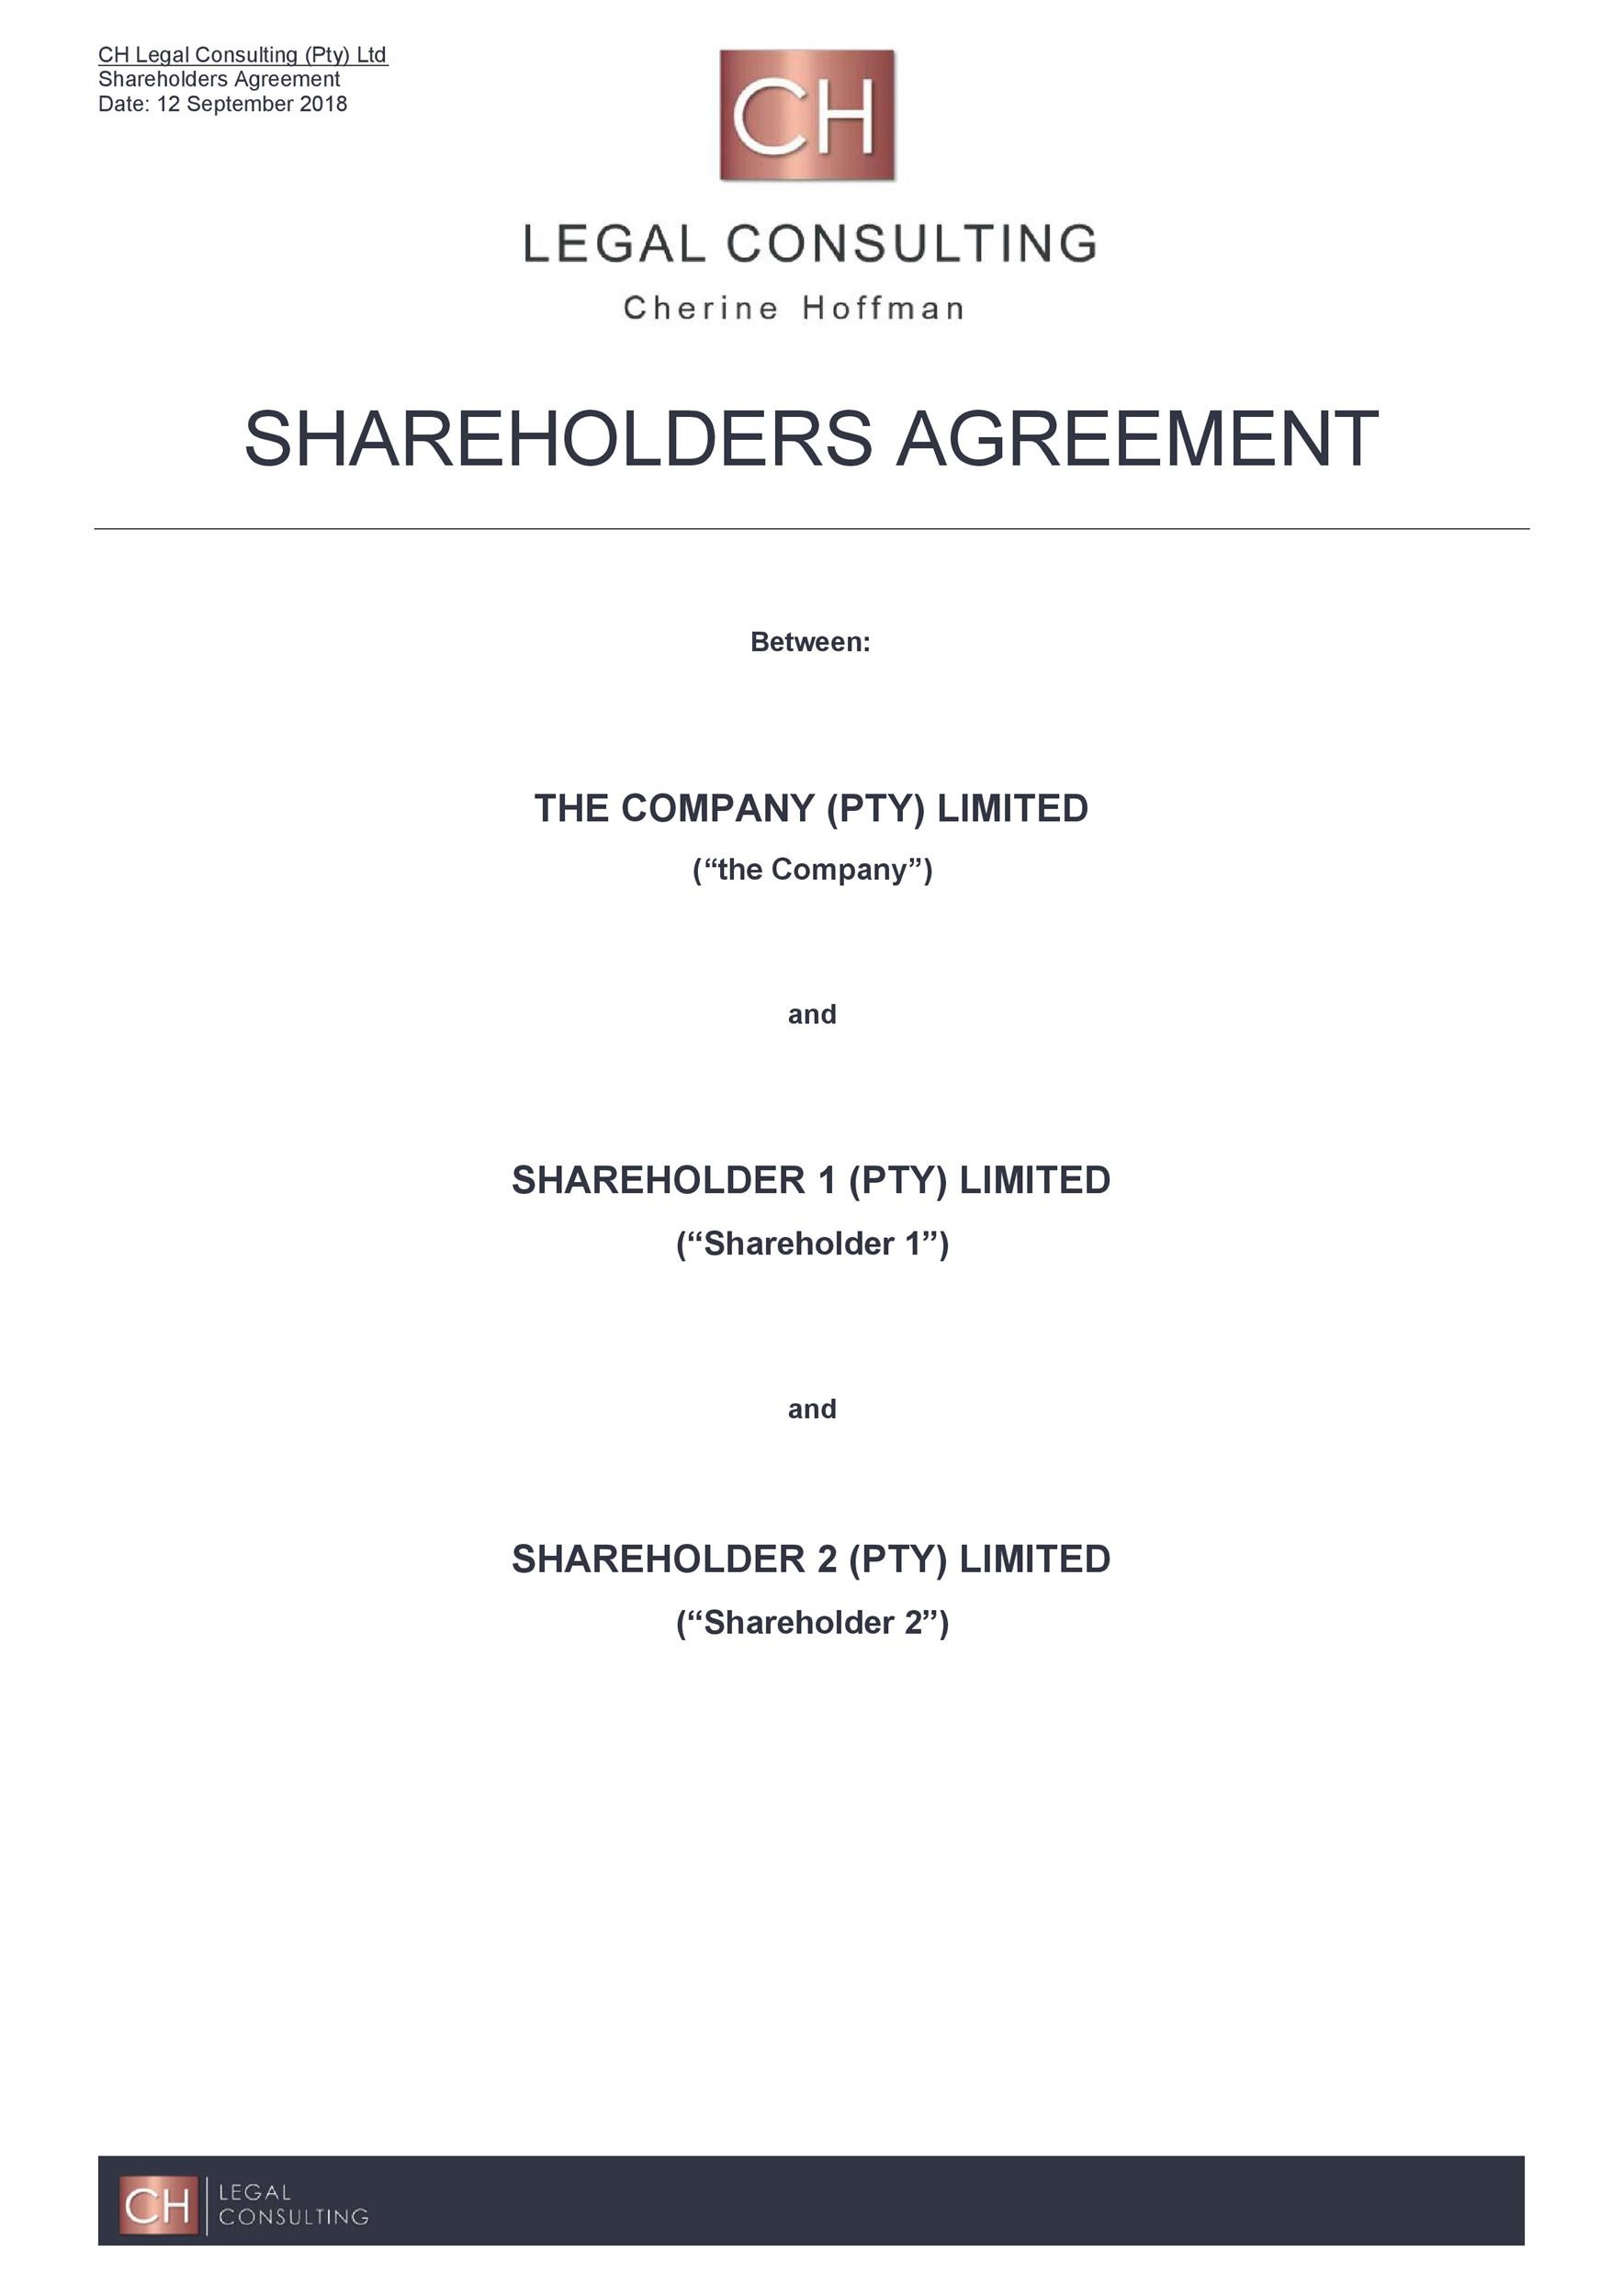 Simple Shareholder Agreement Template from templatelab.com